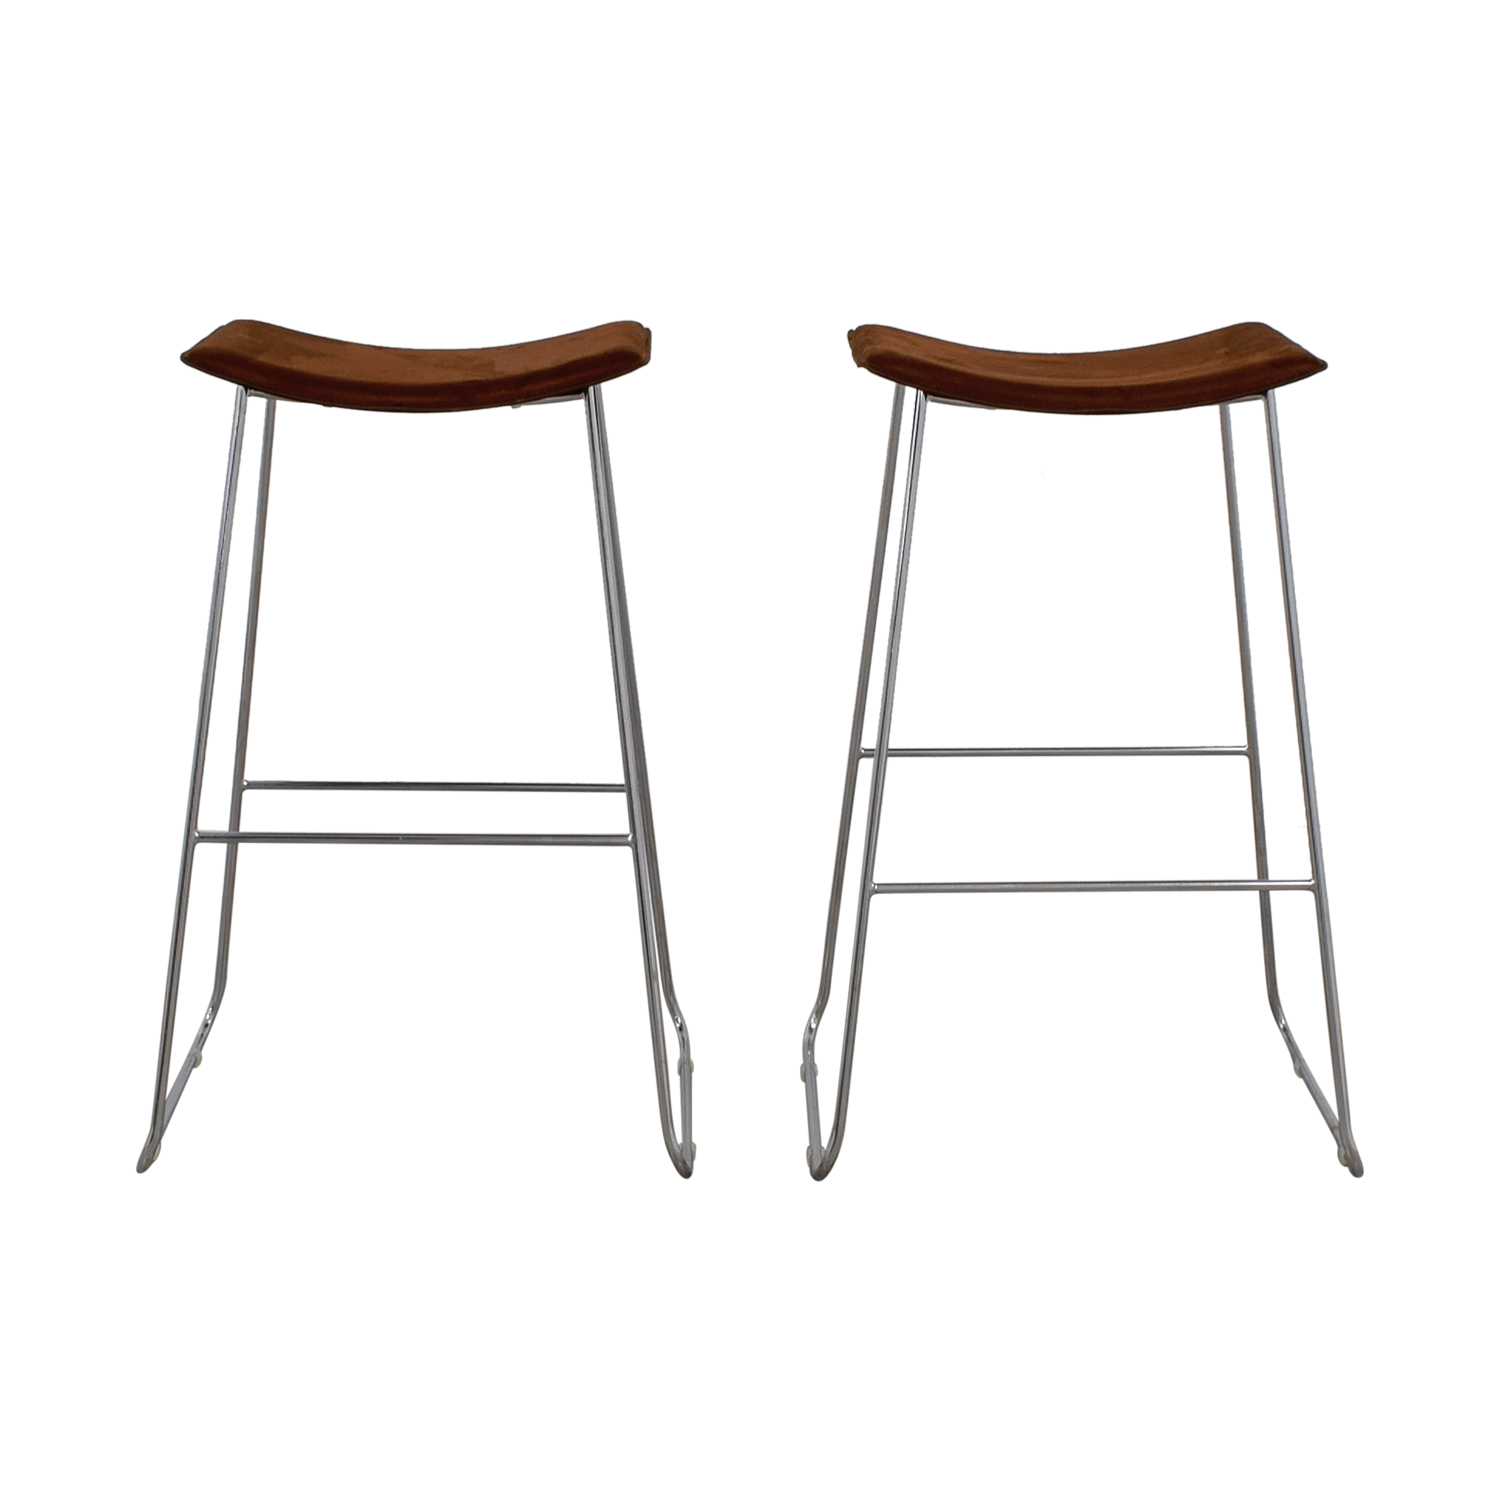 CB2 CB2 Brown Suede Bar Stools Stools